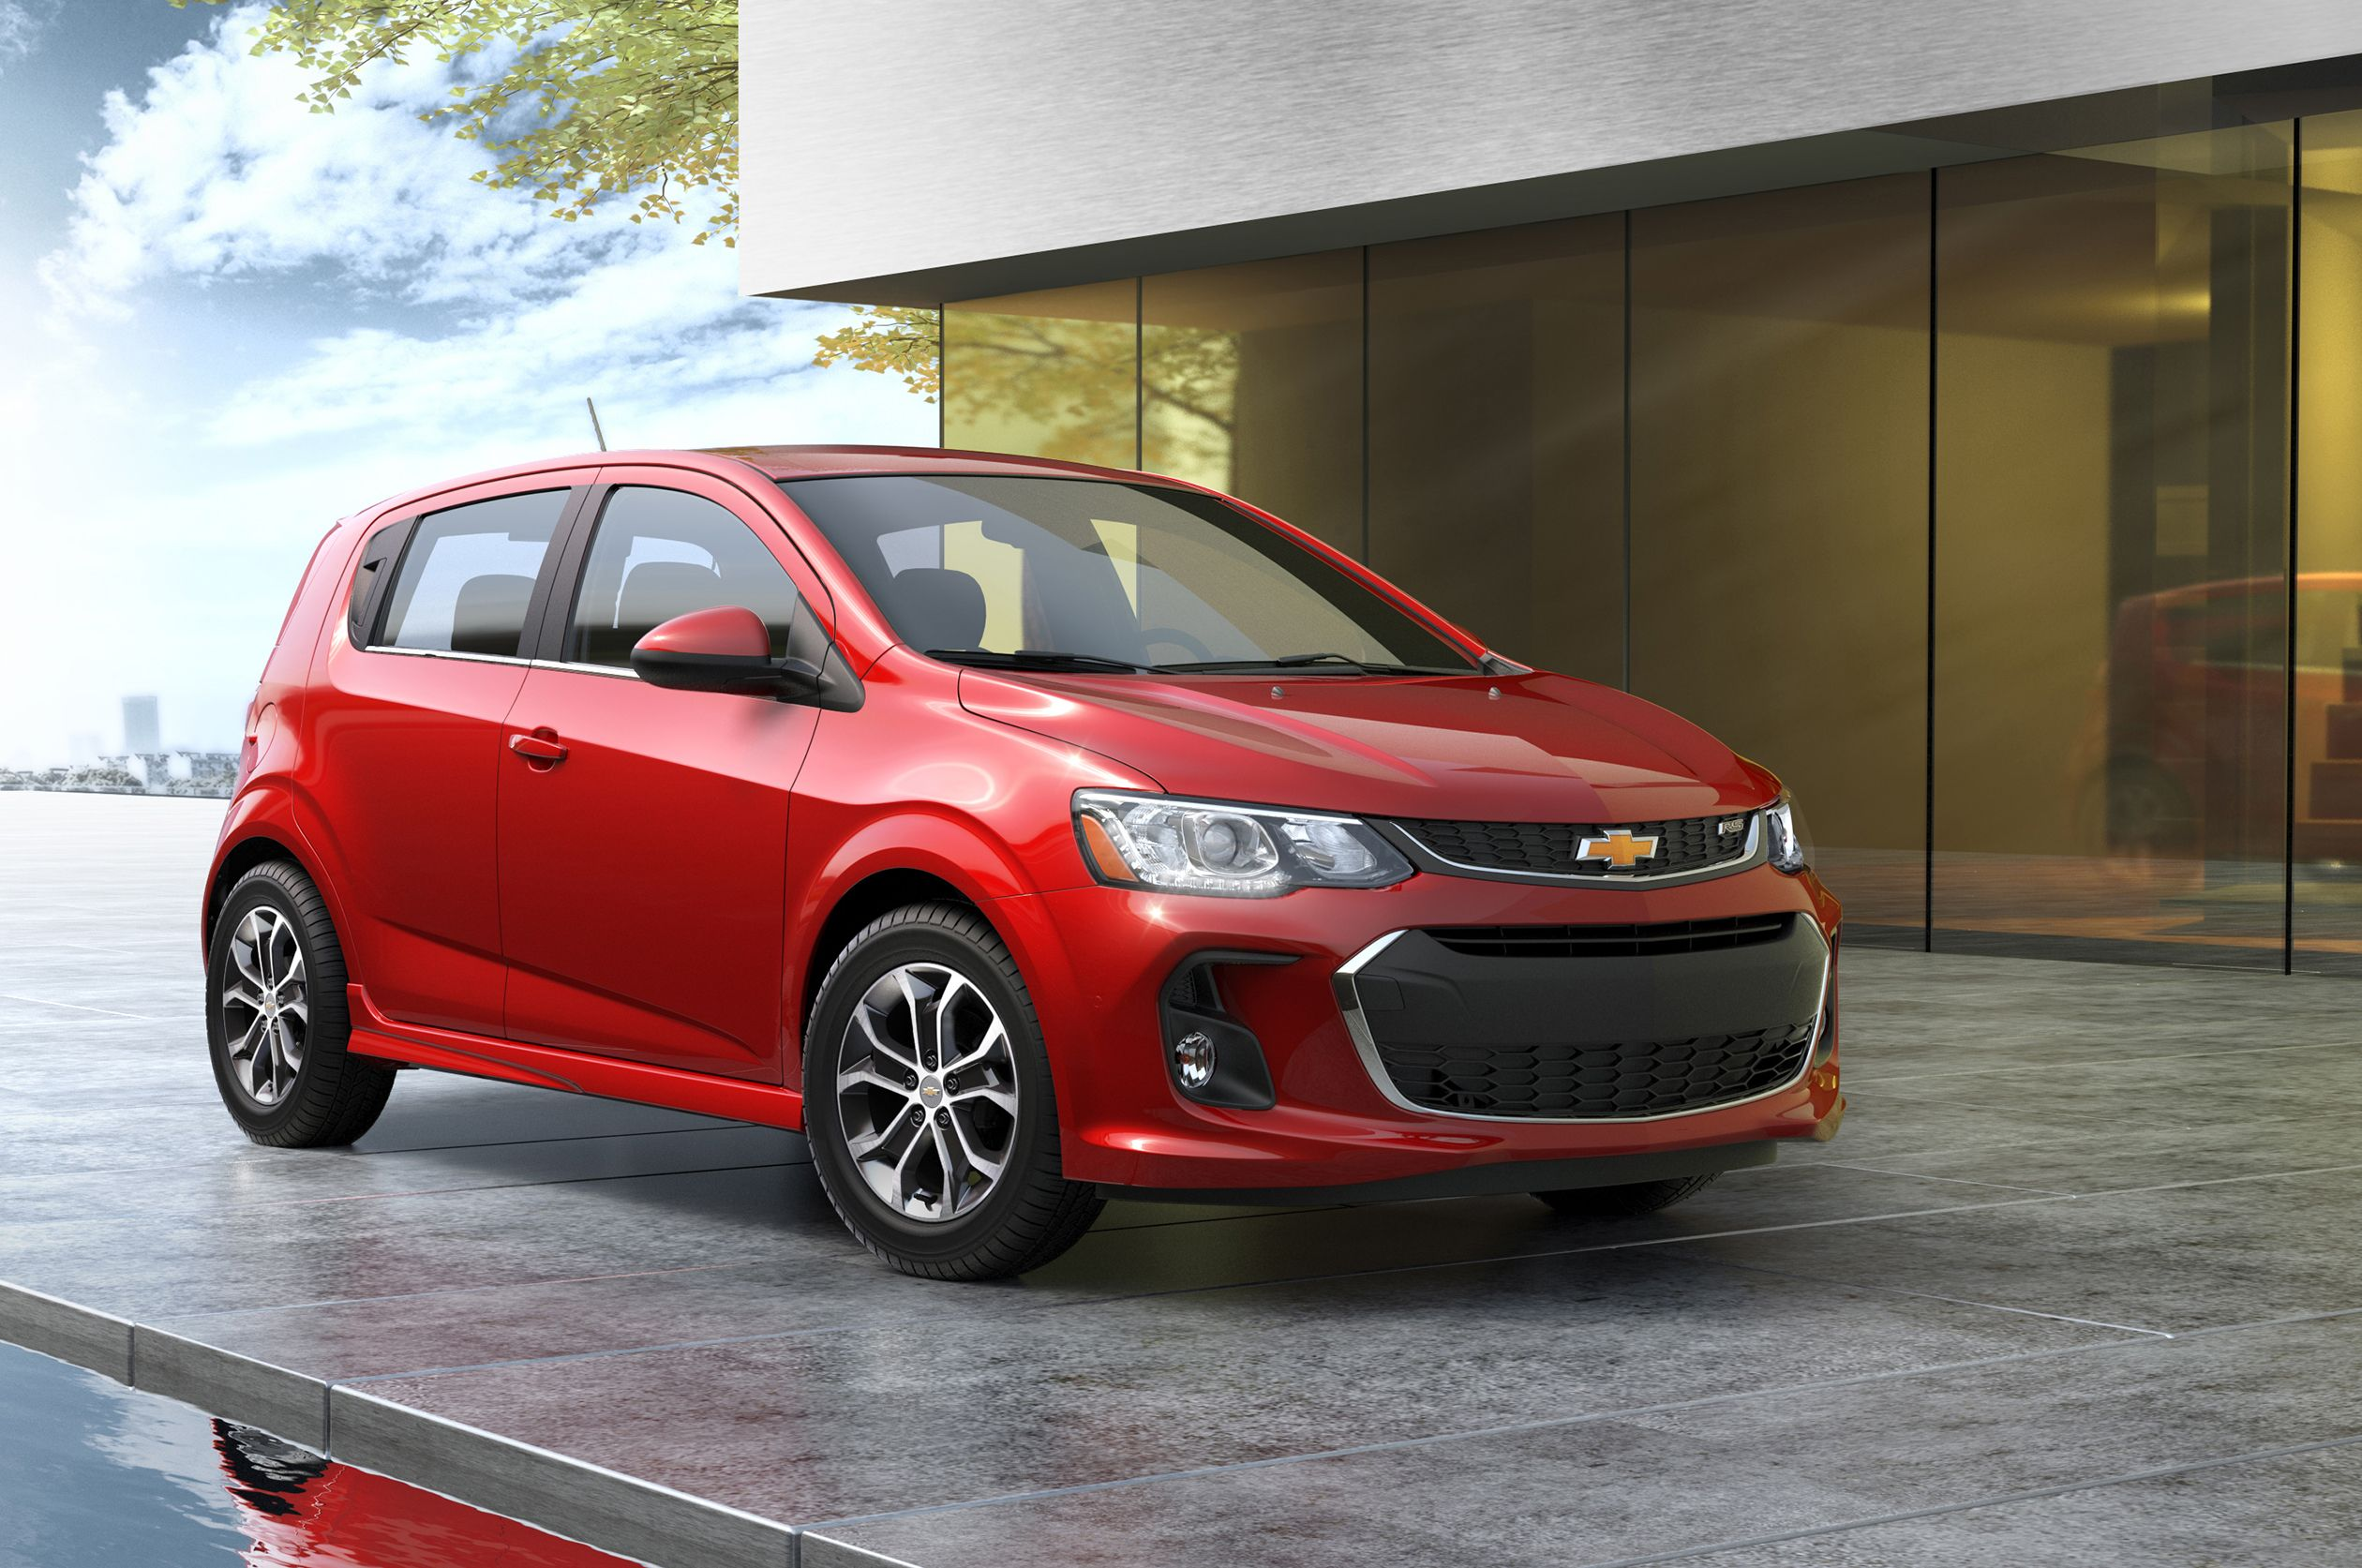 Refreshed 2017 Chevrolet Sonic Debuts At 2016 New York Auto Show